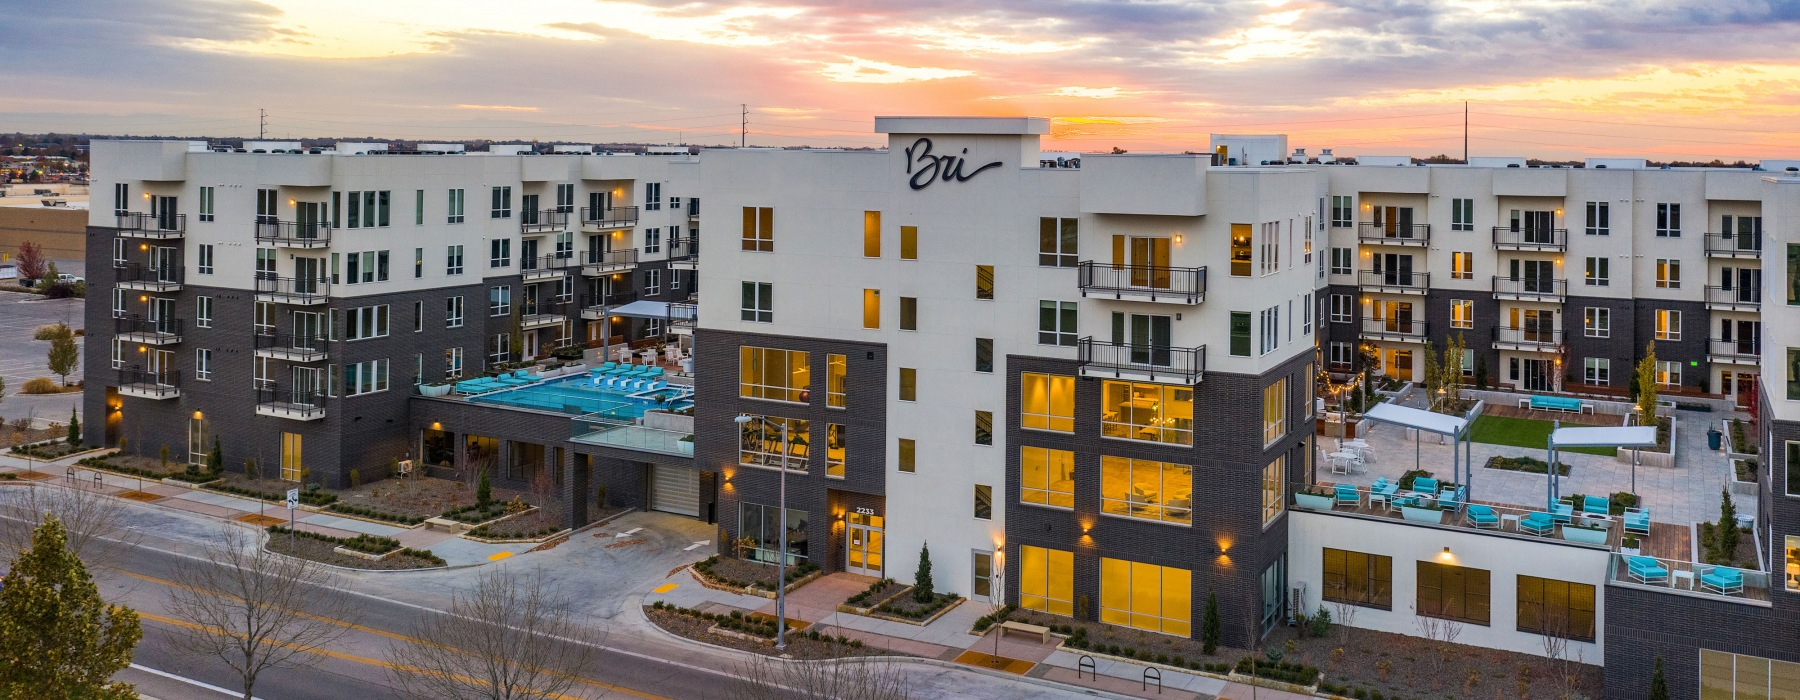 Book Your Tour of Bri at The Village Today to Explore 55+ Active Adult Living!